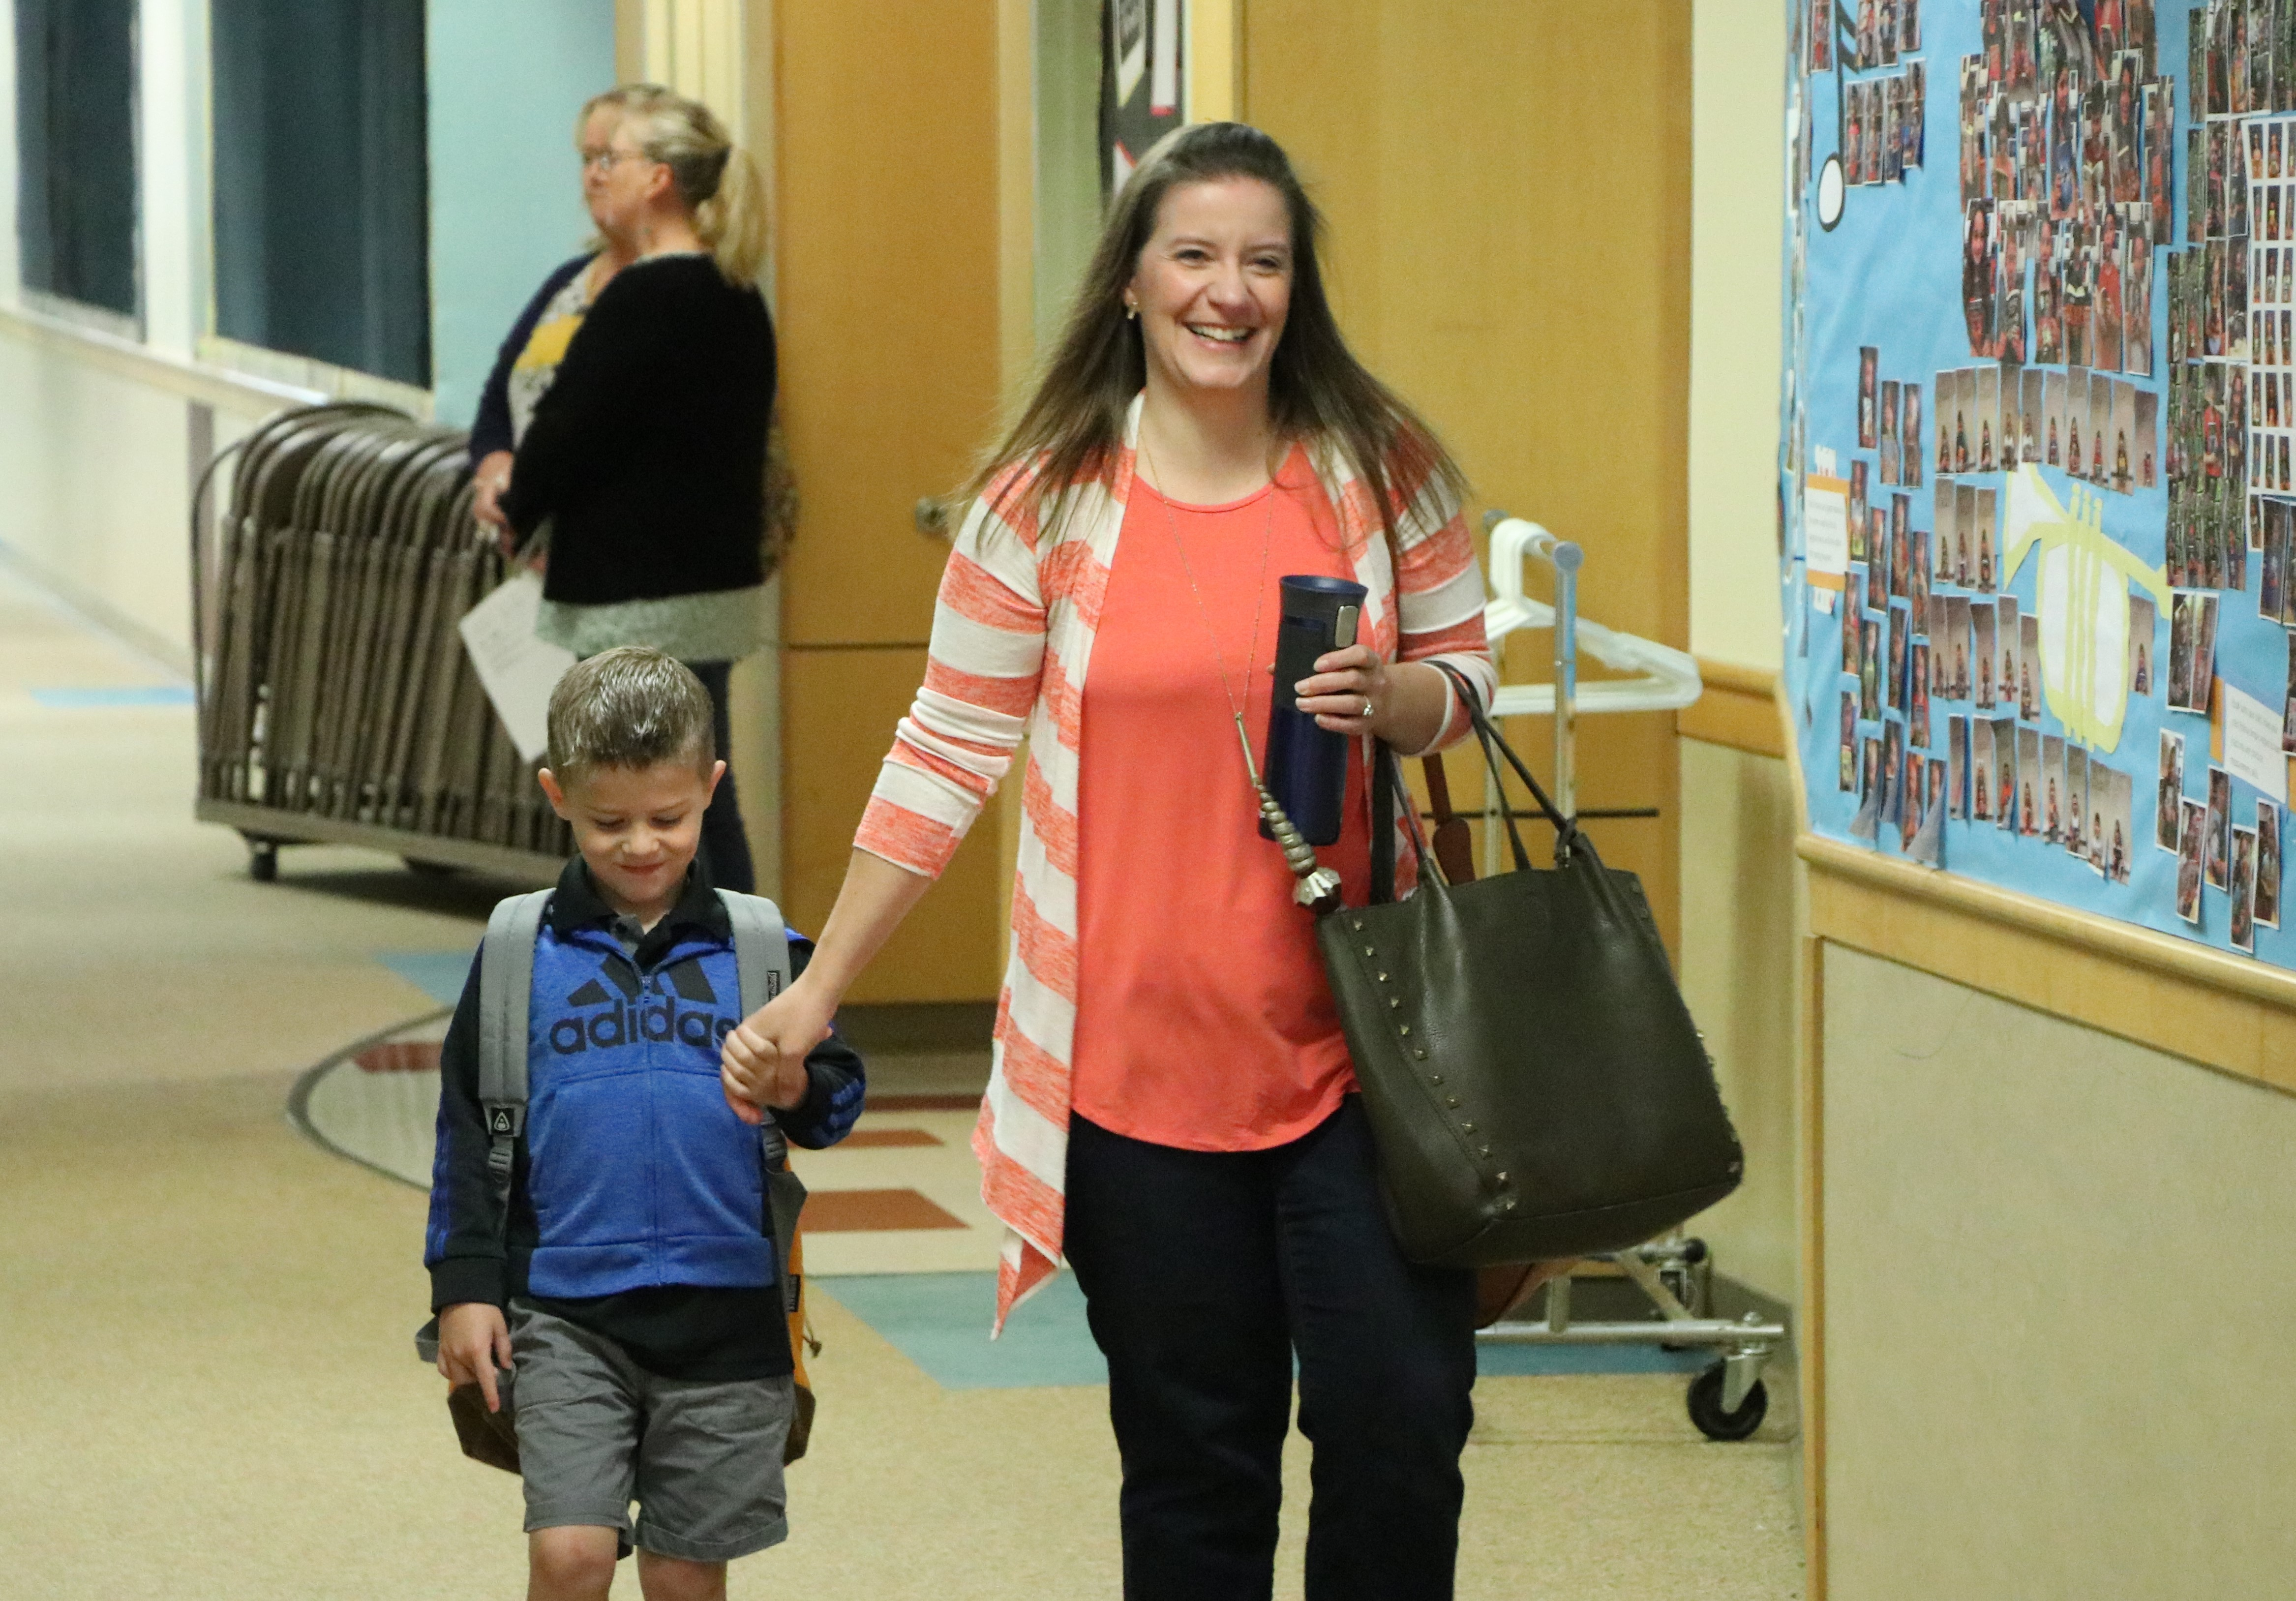 Natalie Frederick walks her son Lucas to kindergarten at Corbett Elementary.